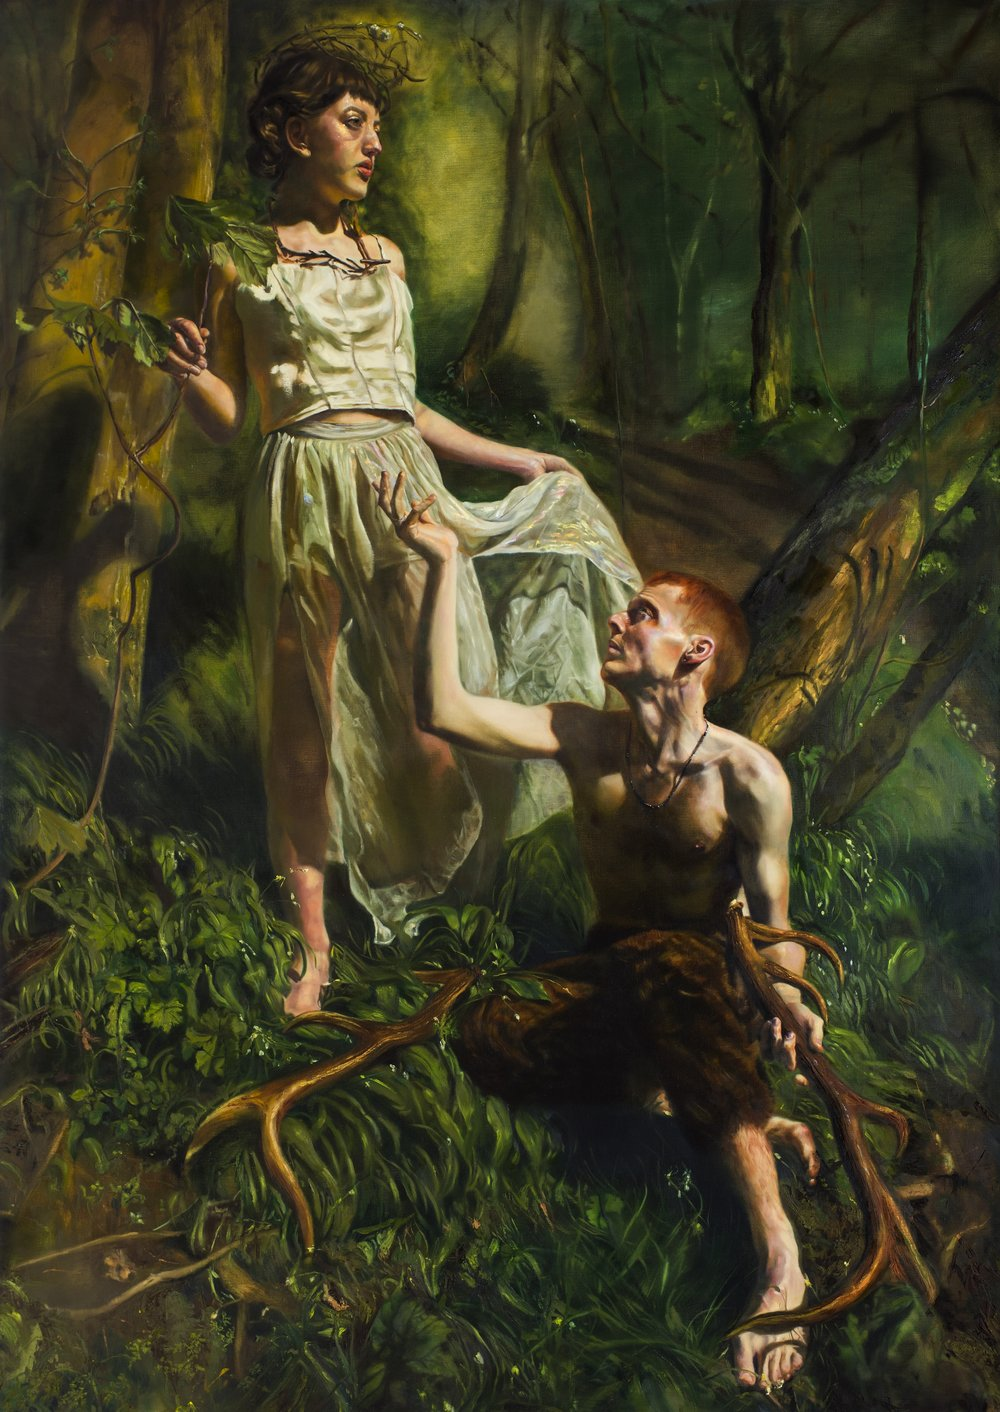 Artemis & Actaeon, Oil on Linen, 190 x 130 cm, 2017